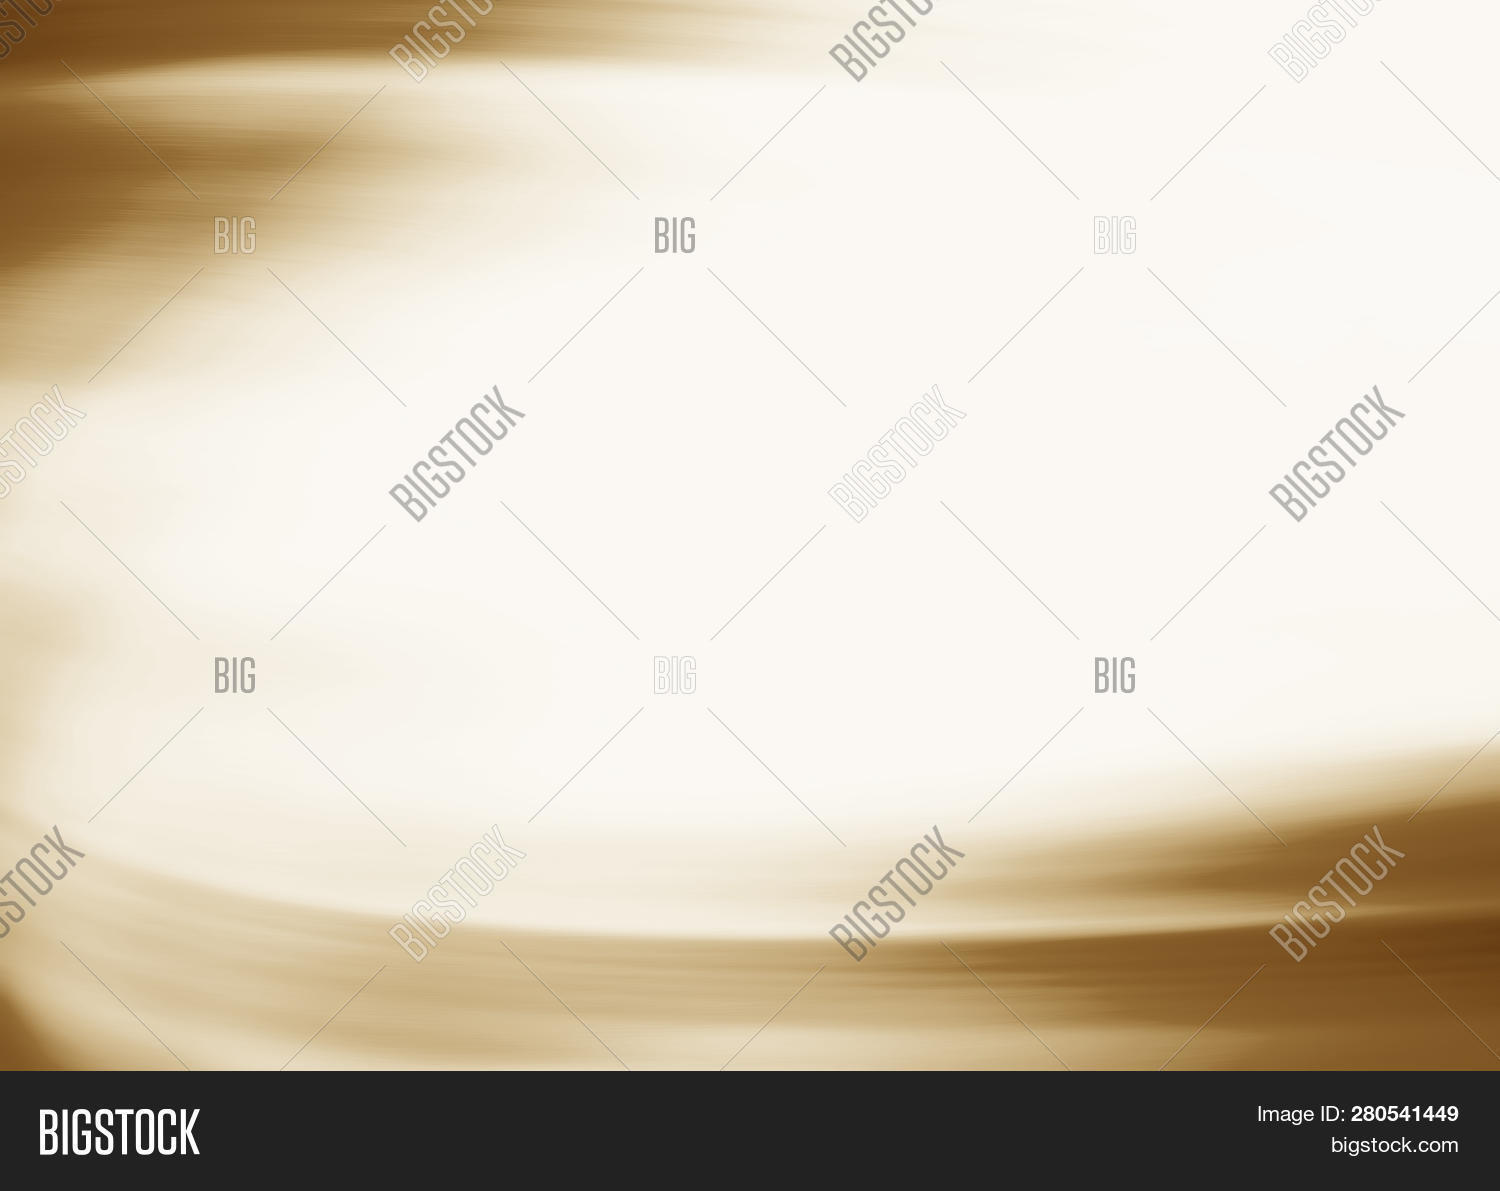 abstract,alloy,backdrop,background,banner,blank,board,border,brass,bright,bronze,brushed,decorative,design,foil,frame,gold,golden,graphic,grunge,illustration,industrial,industry,iron,light,luxury,material,metal,metallic,modern,new,old,page,panel,pattern,plate,sheet,shine,shiny,smooth,space,stainless,steel,surface,texture,textured,vintage,wall,wallpaper,yellow